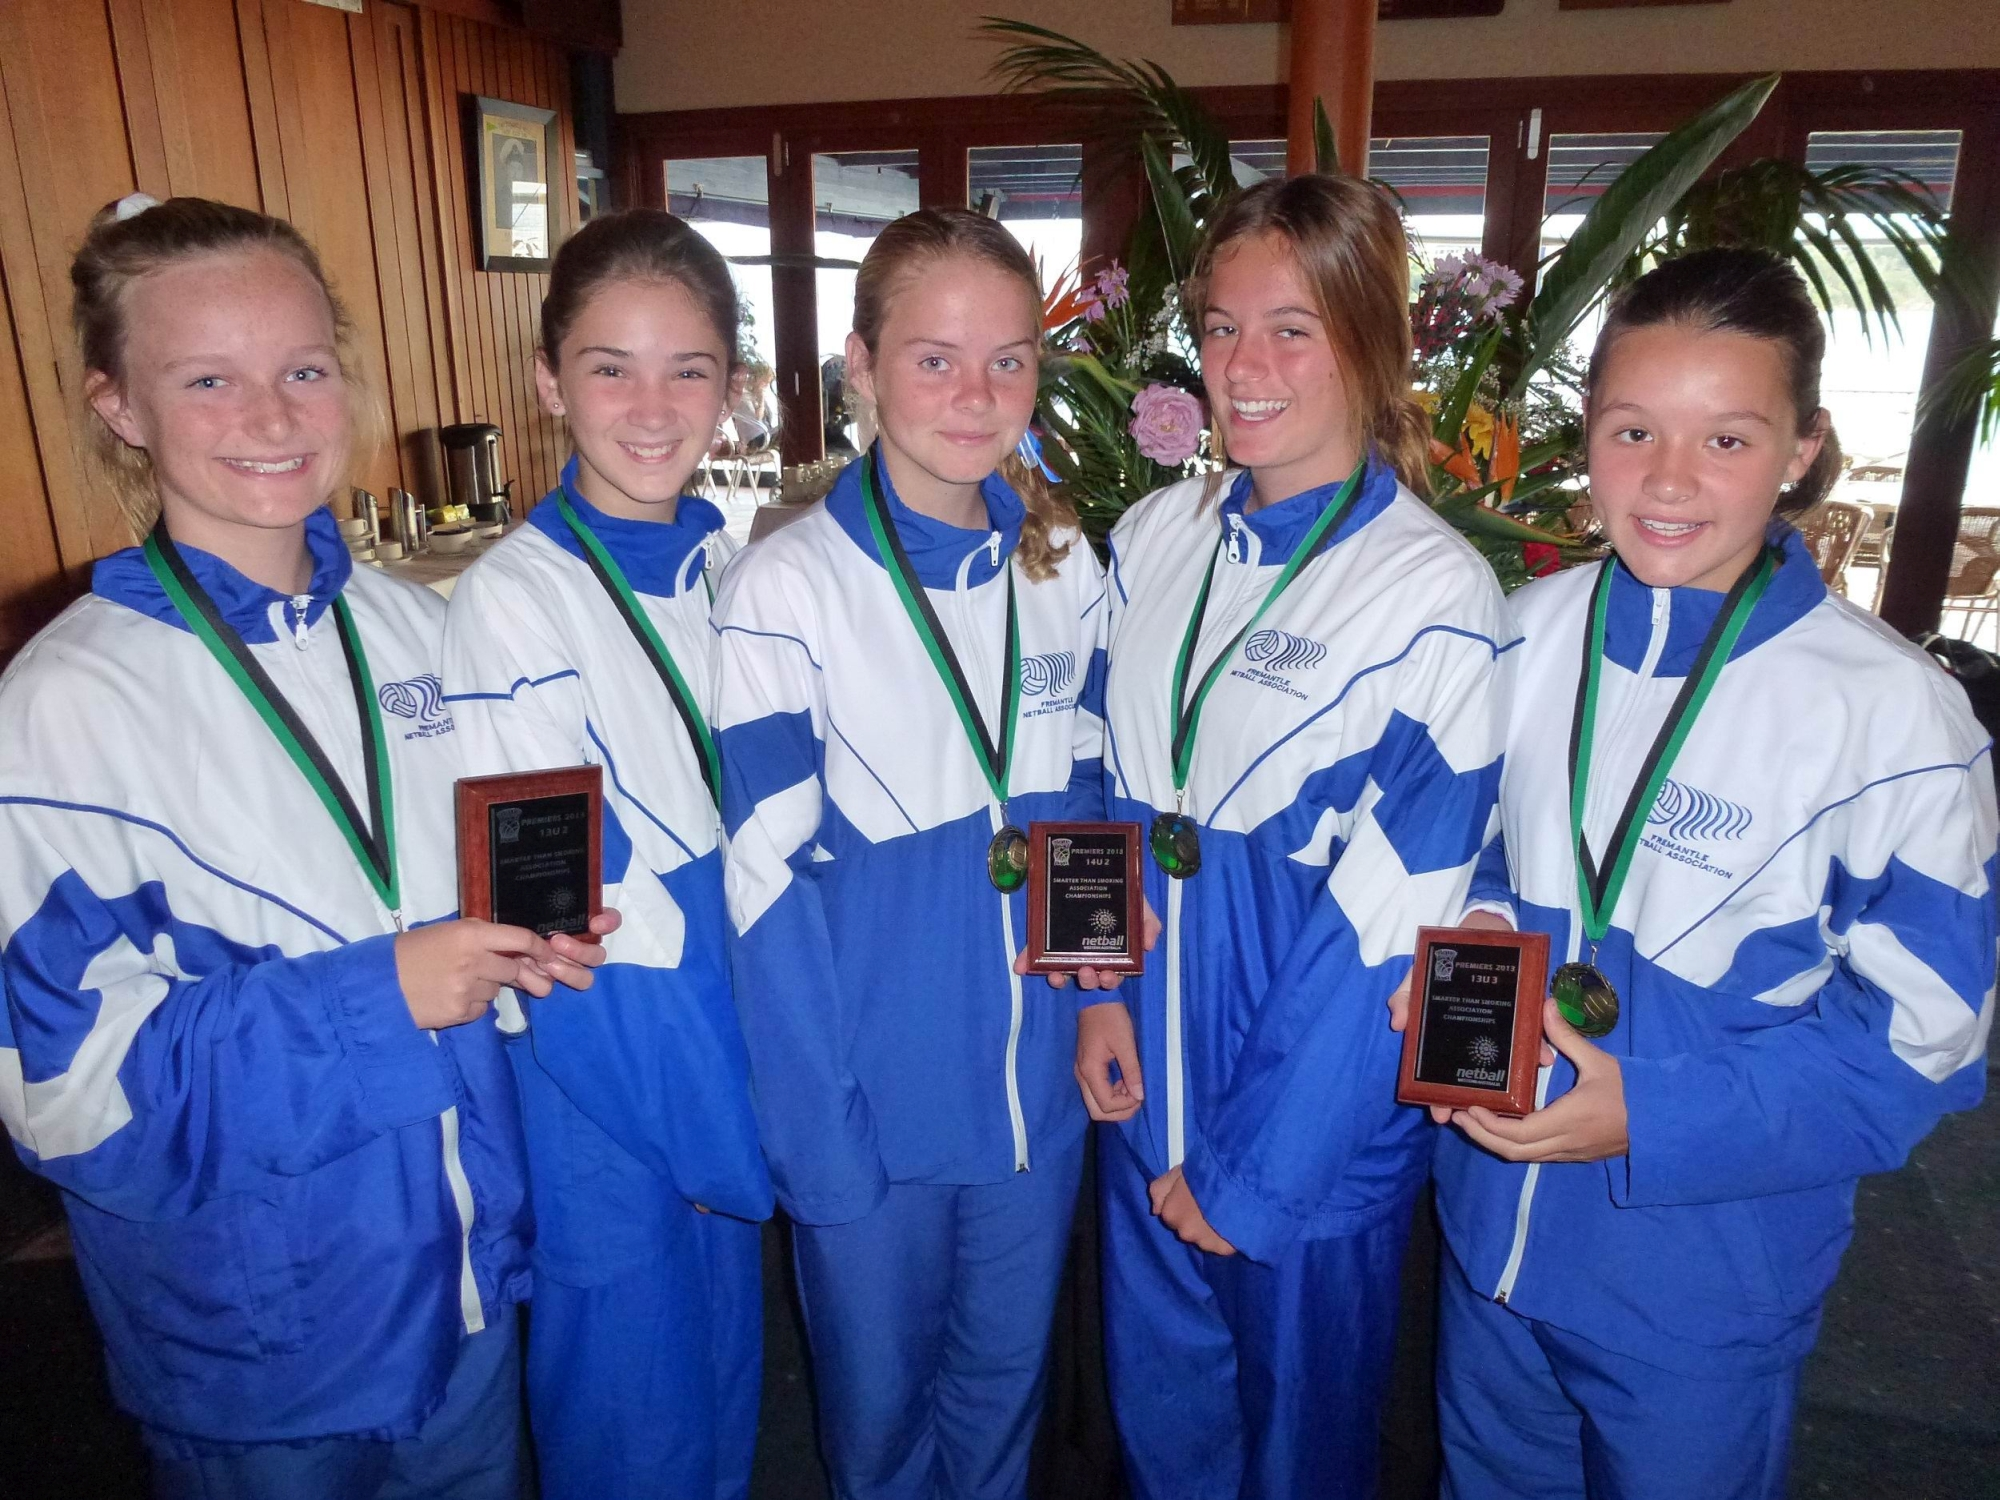 Winning team captains, from left, Ruby McLernon, Jess Brown, Teegan Burns, Gian Coppard and Ella Hartley.